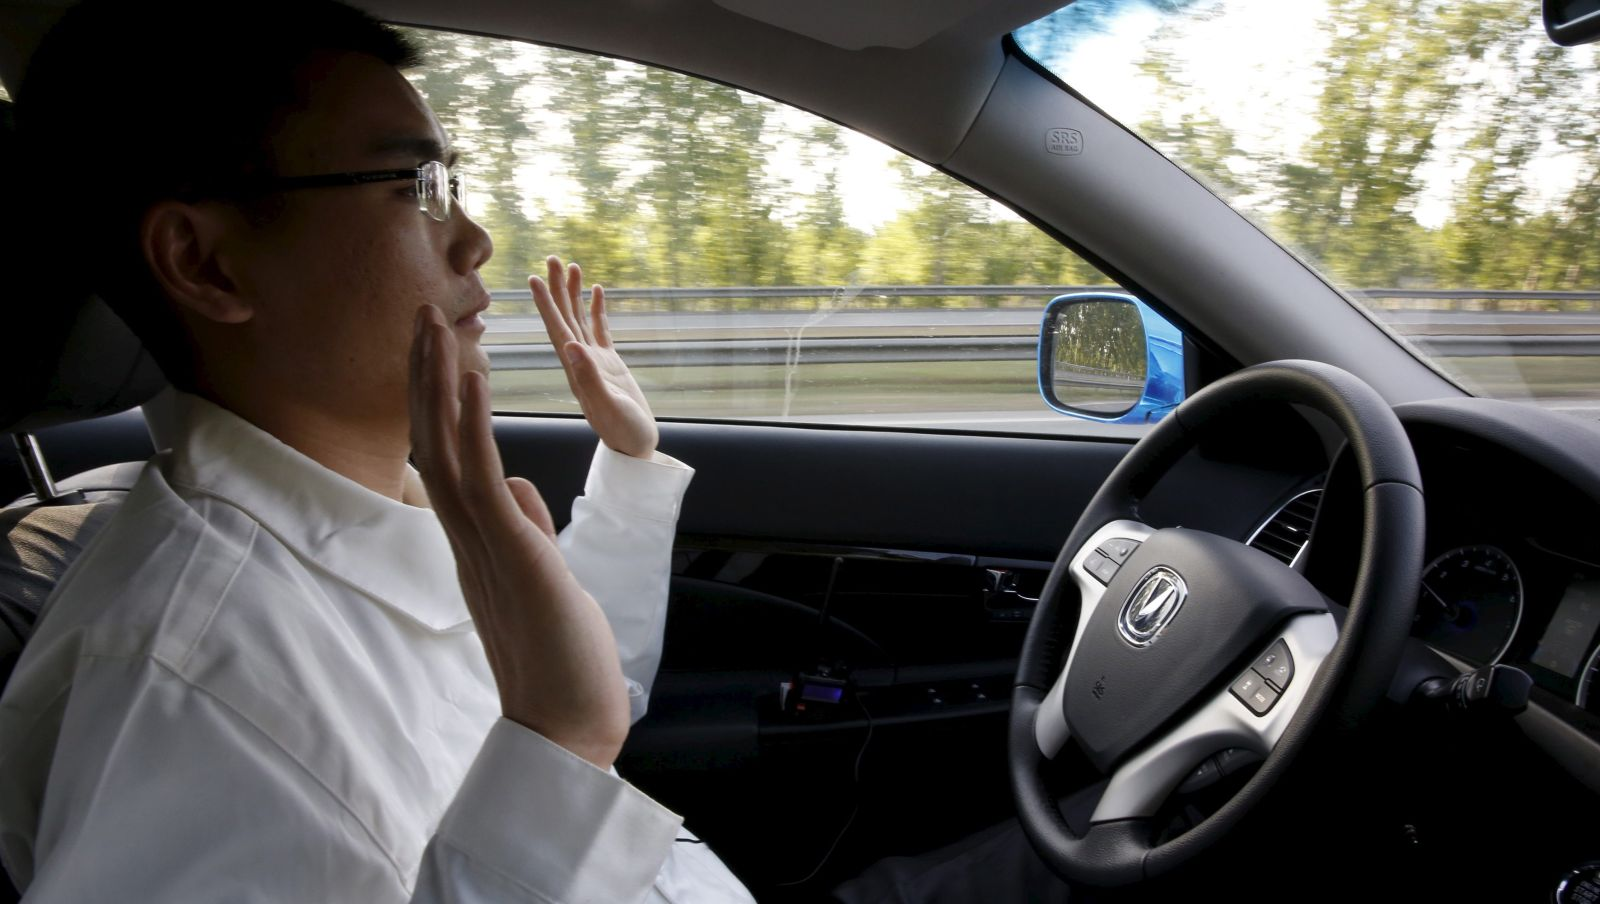 Chinese Startups To Compete With Tech Giants To Make Self Driving Taxis A Reality